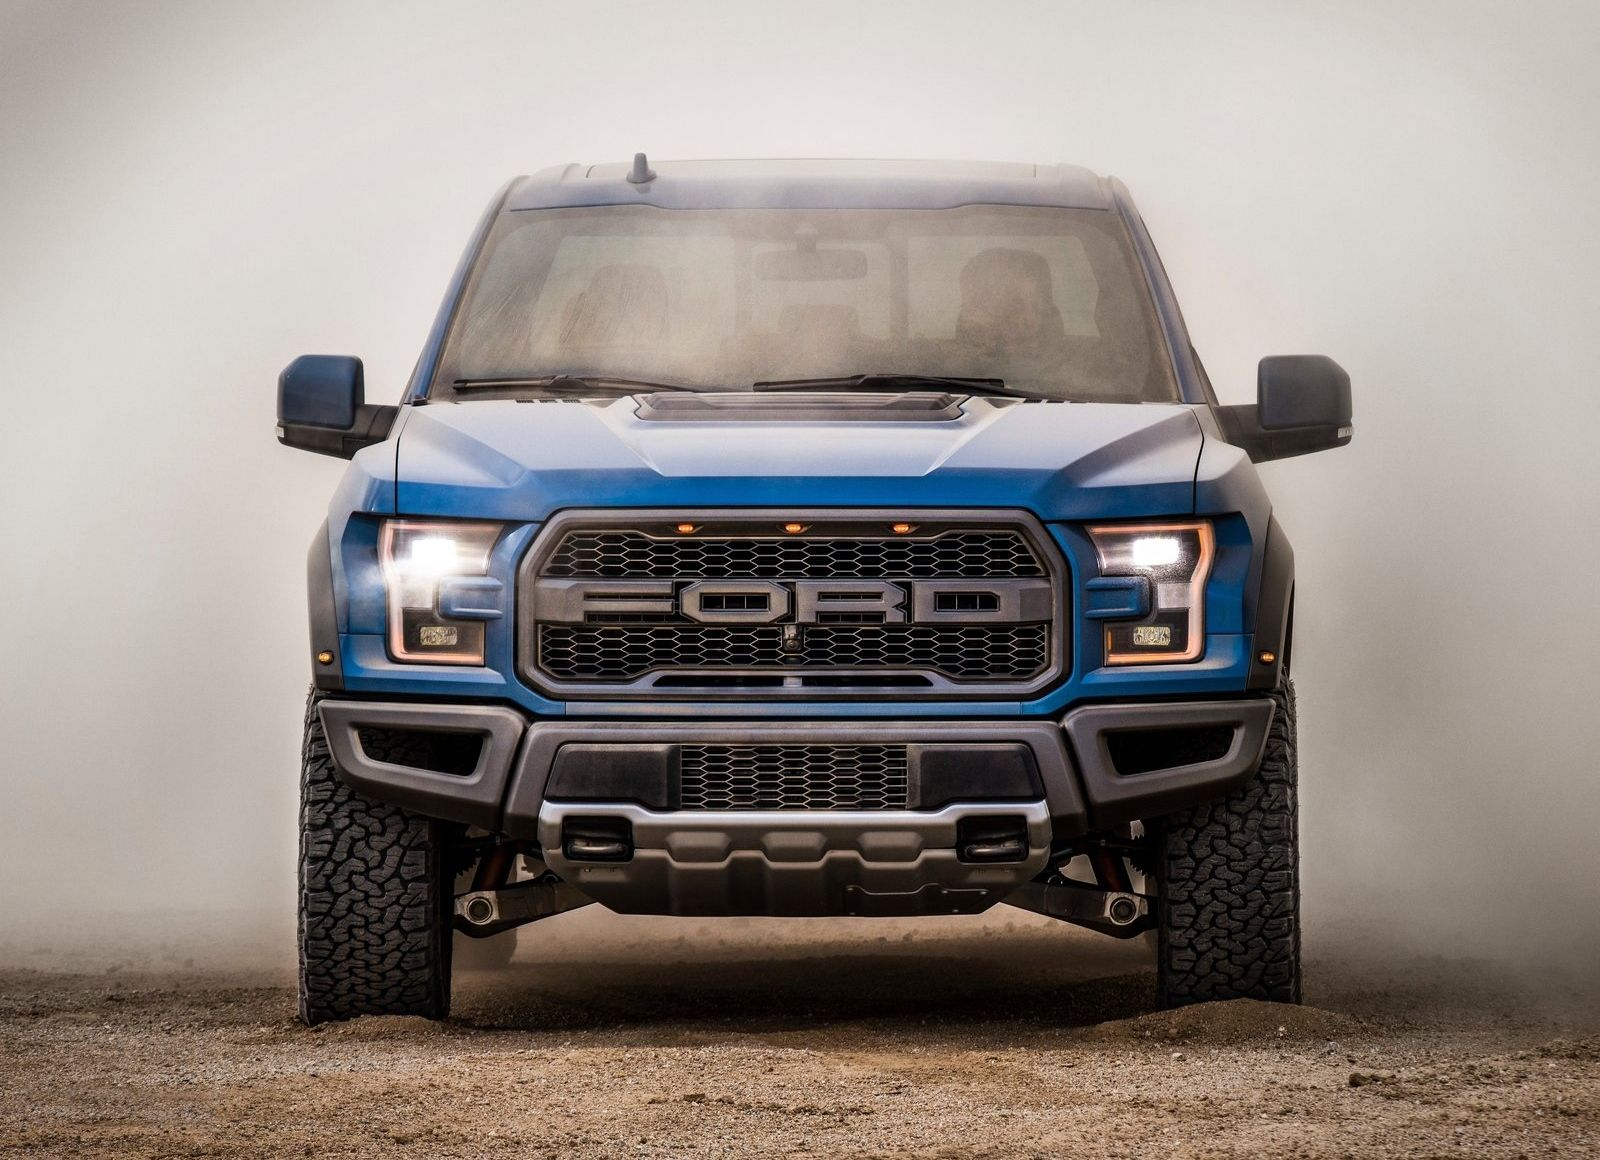 Ford Making A Super F 150 Raptor With 700 Hp V8 From Mustang Gt500 Ford Raptor Ford F150 Ford F150 Raptor